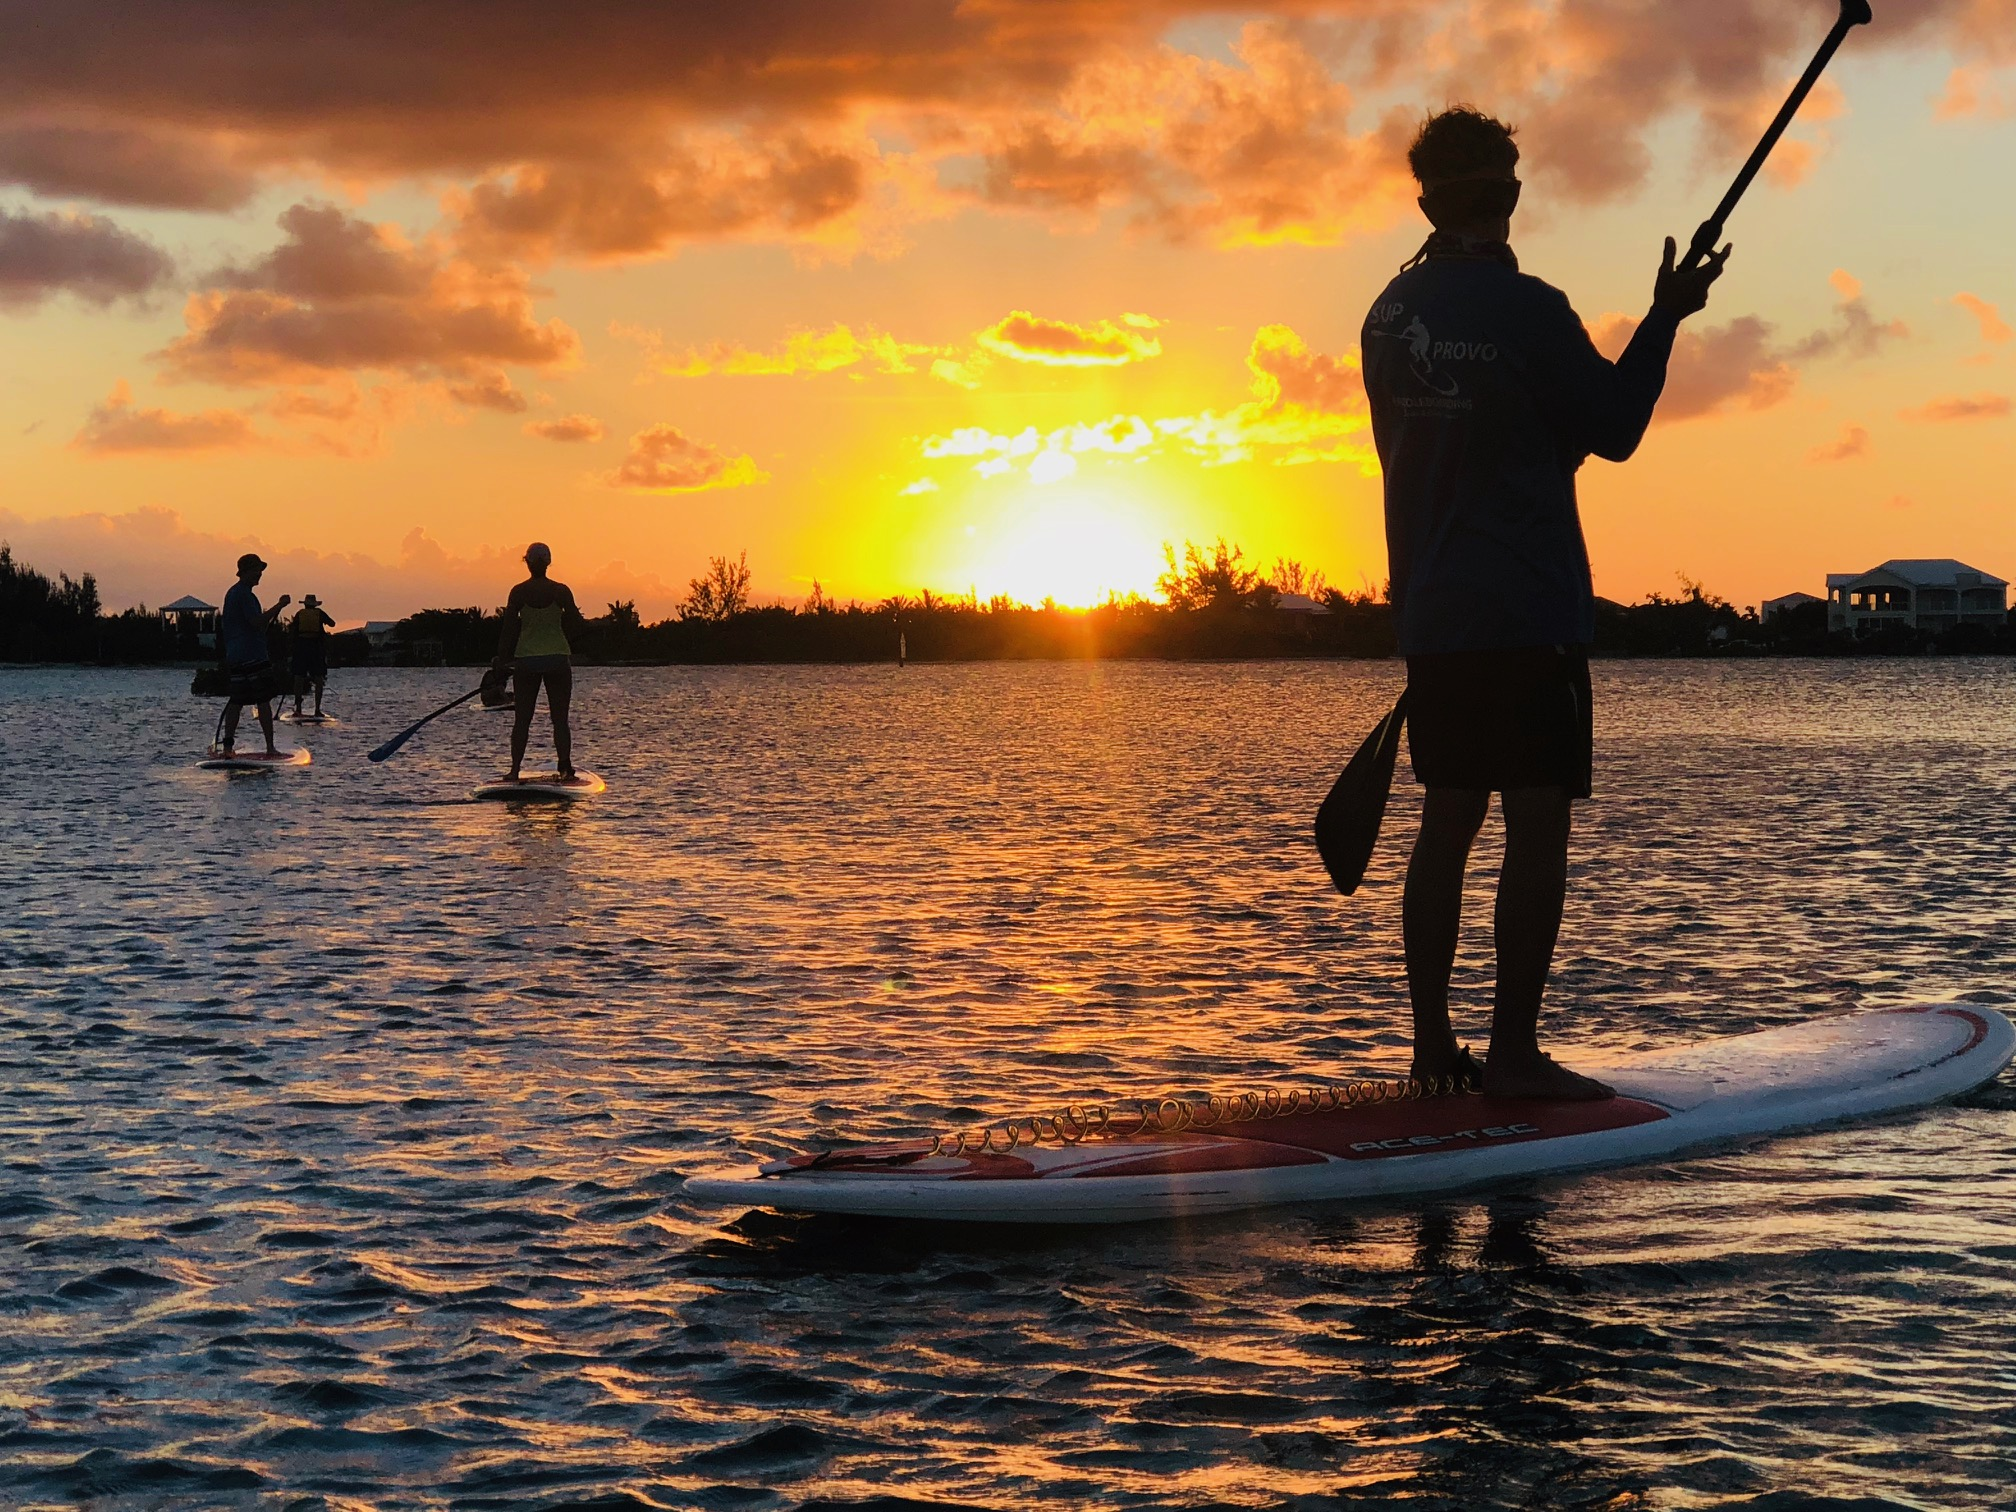 10% SUP discount: Turks and Caicos paddle boarding eco tour